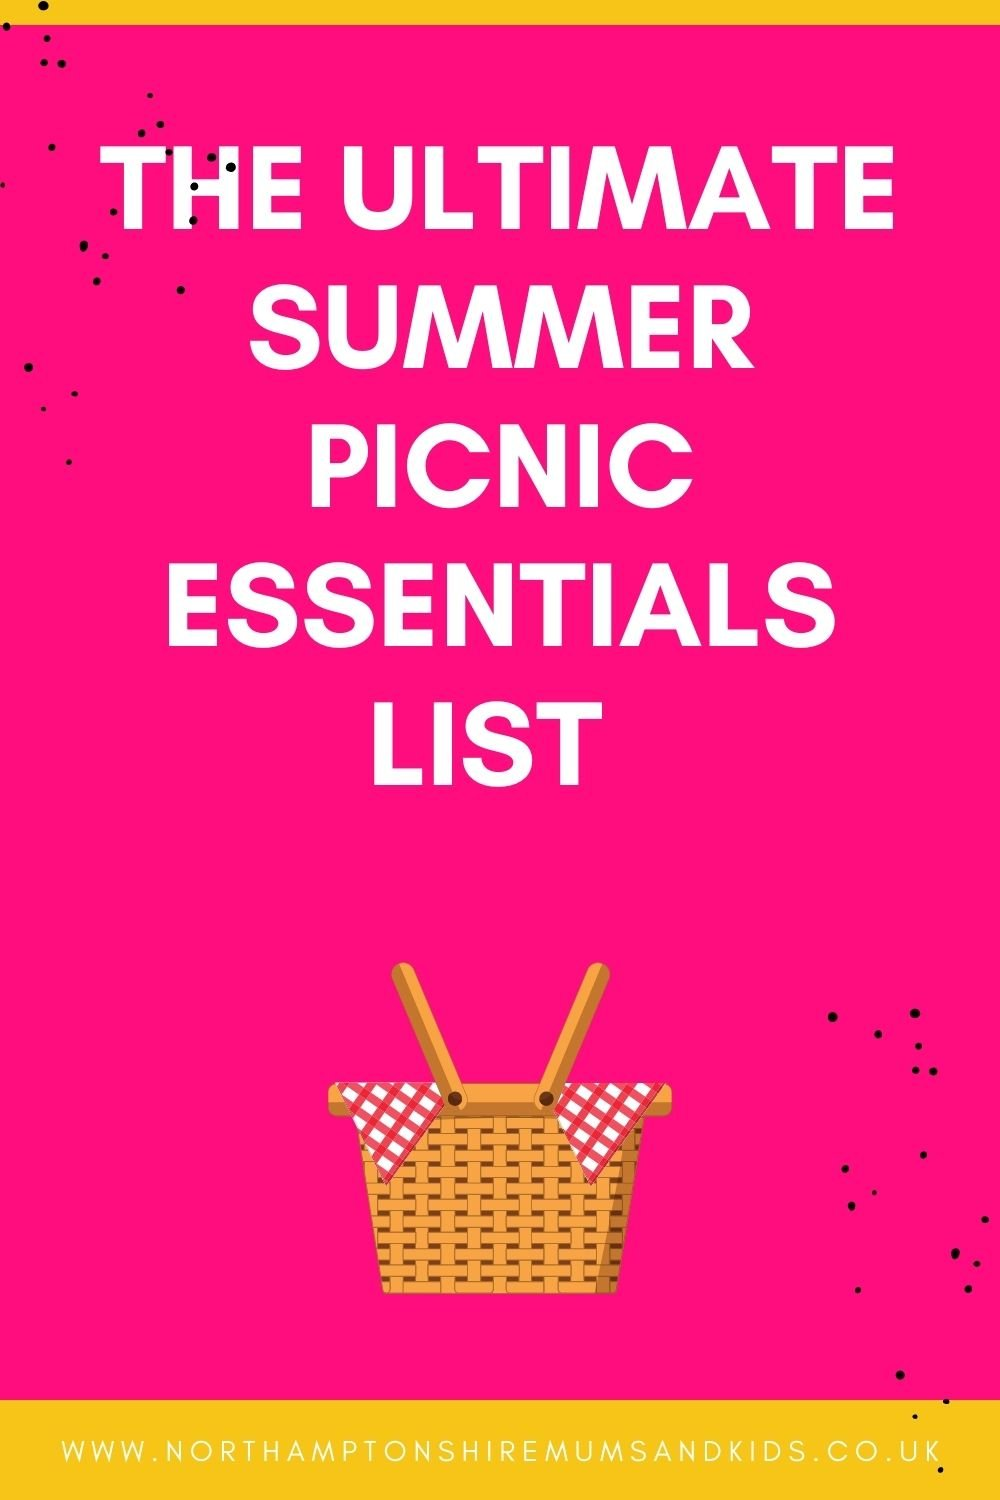 The Ultimate Summer Picnic Essentials List For A Fantastic Family Day Out